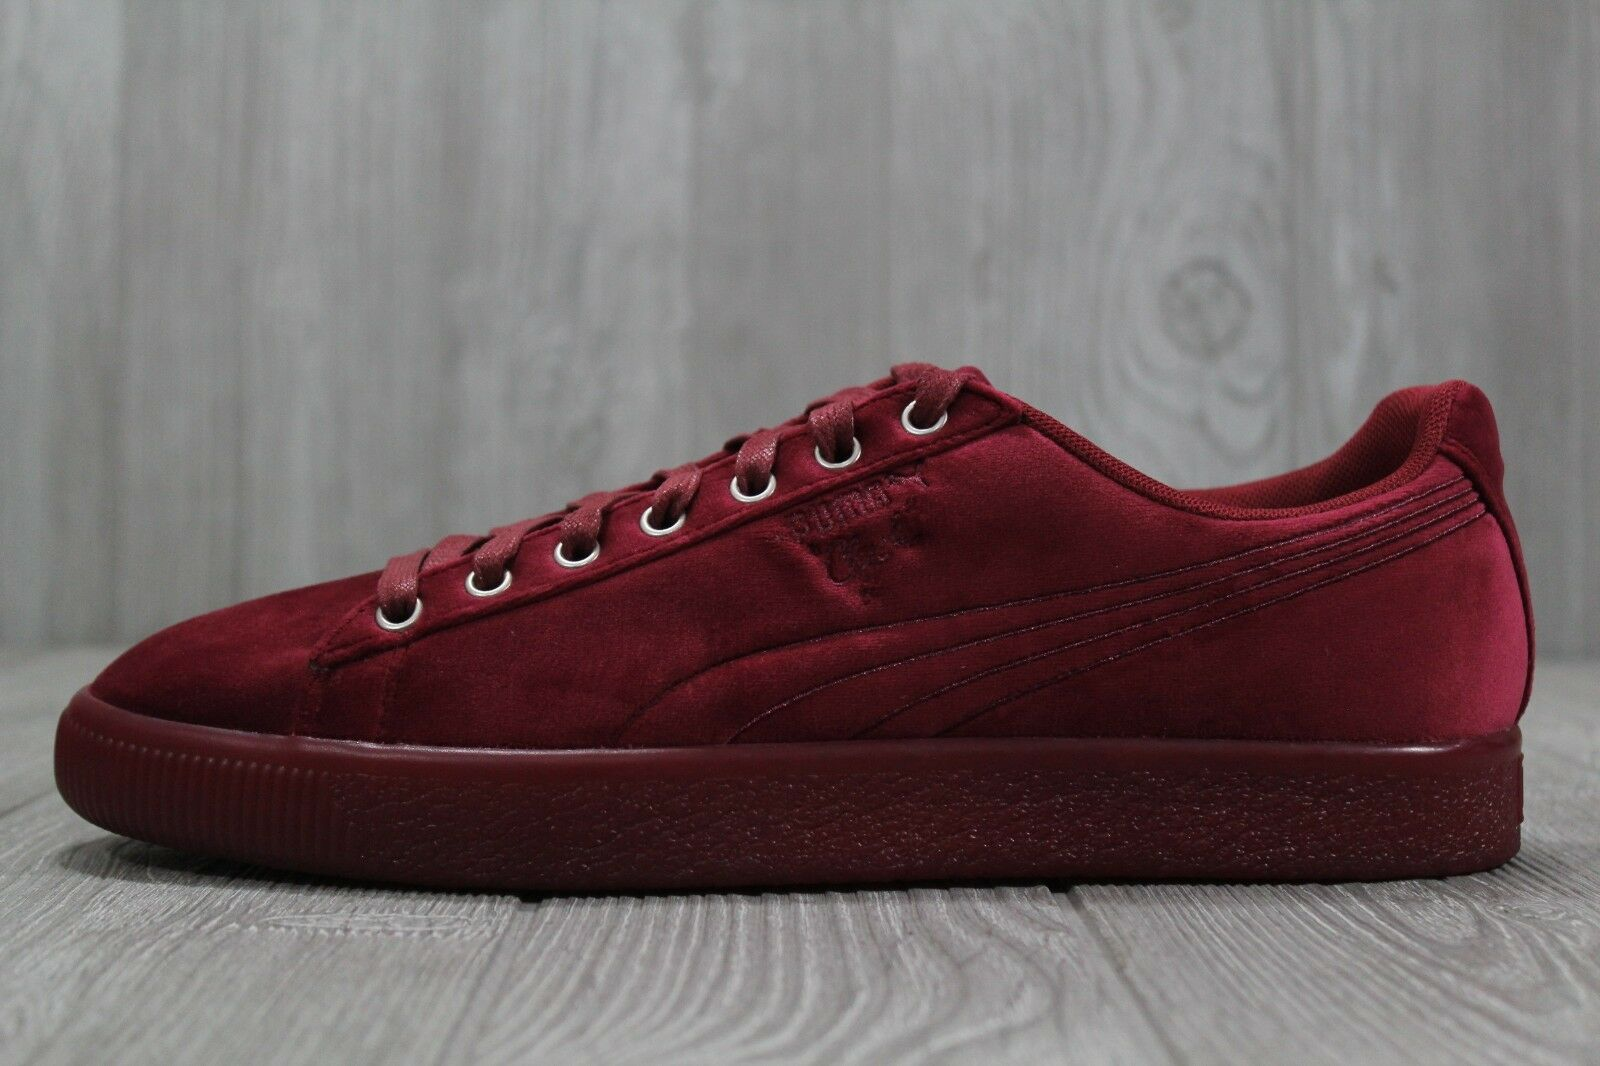 871c5187b8 35 New Puma Clyde Velour Ice Red shoes Size 9 11 04 Men's 366549 ...